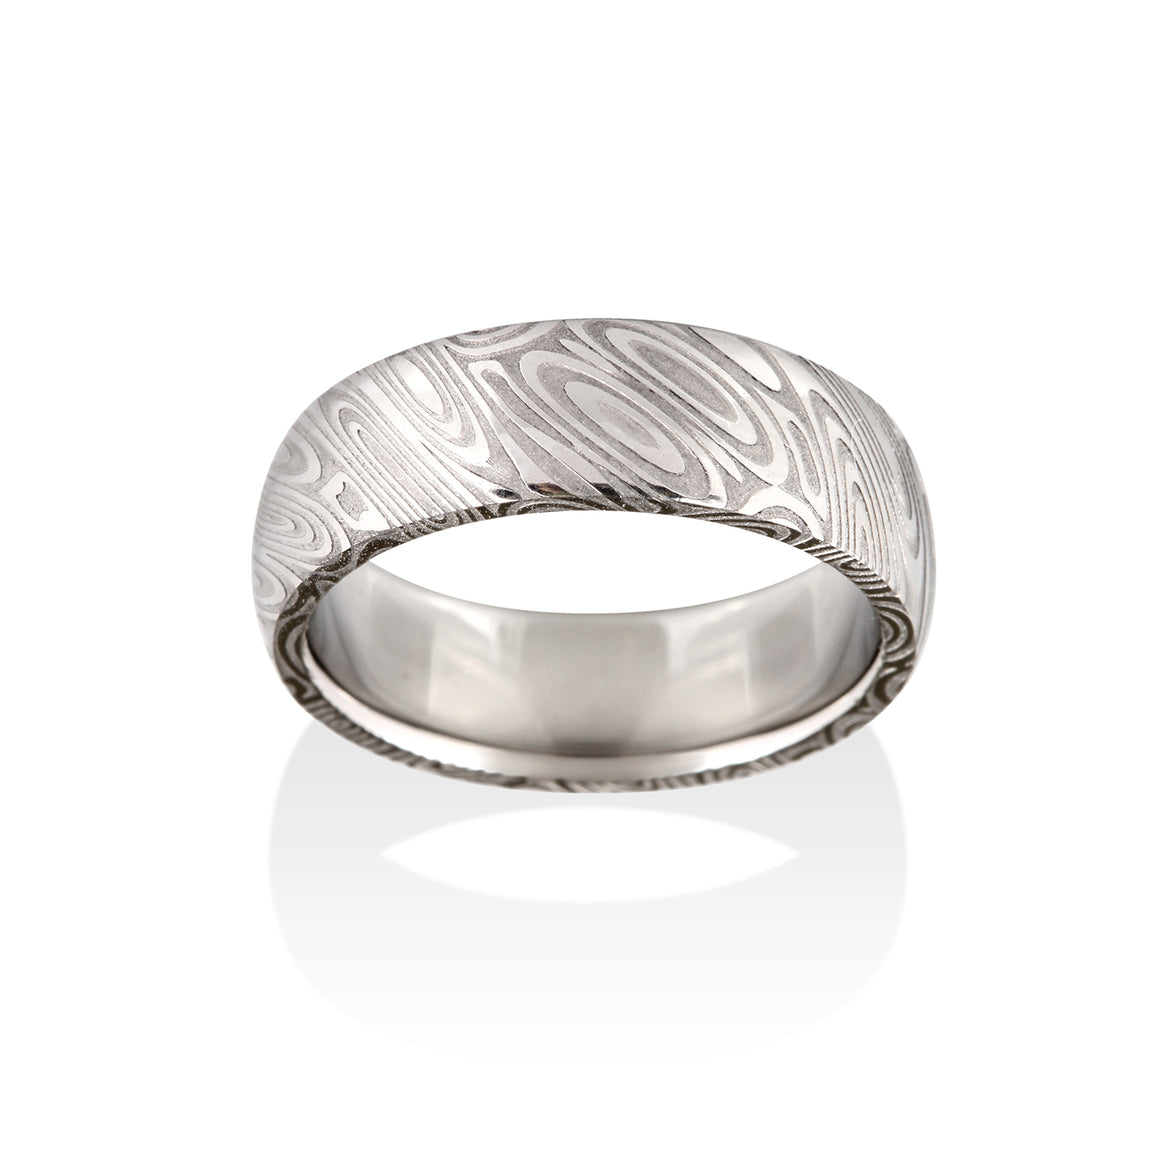 Wood Grain Damascus Steel Ring by Chris Ploof - Talisman Collection Fine Jewelers